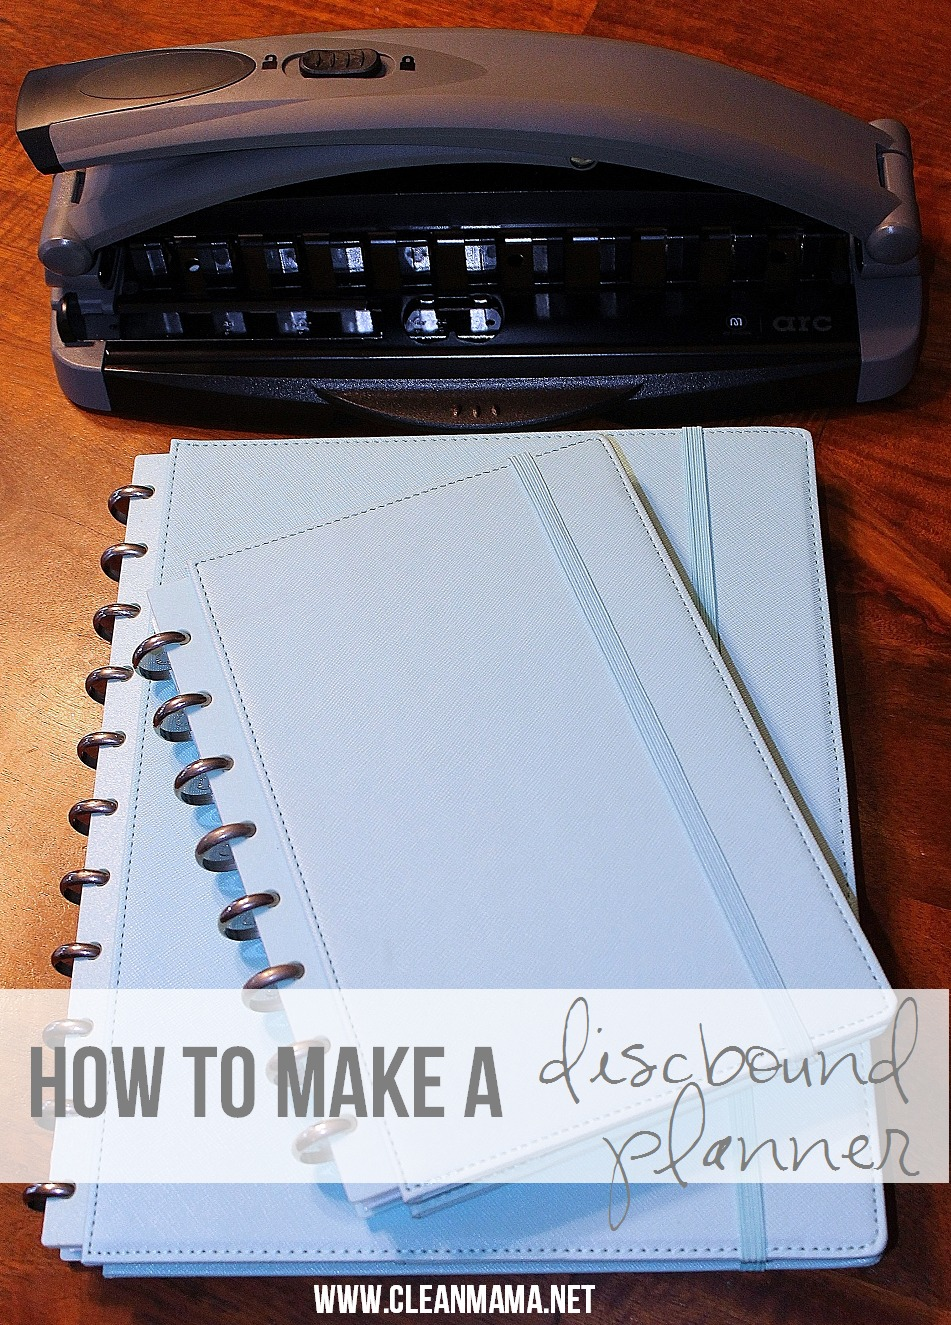 How to make a discbound planner clean mama how to make a discbound planner via clean mama reheart Image collections